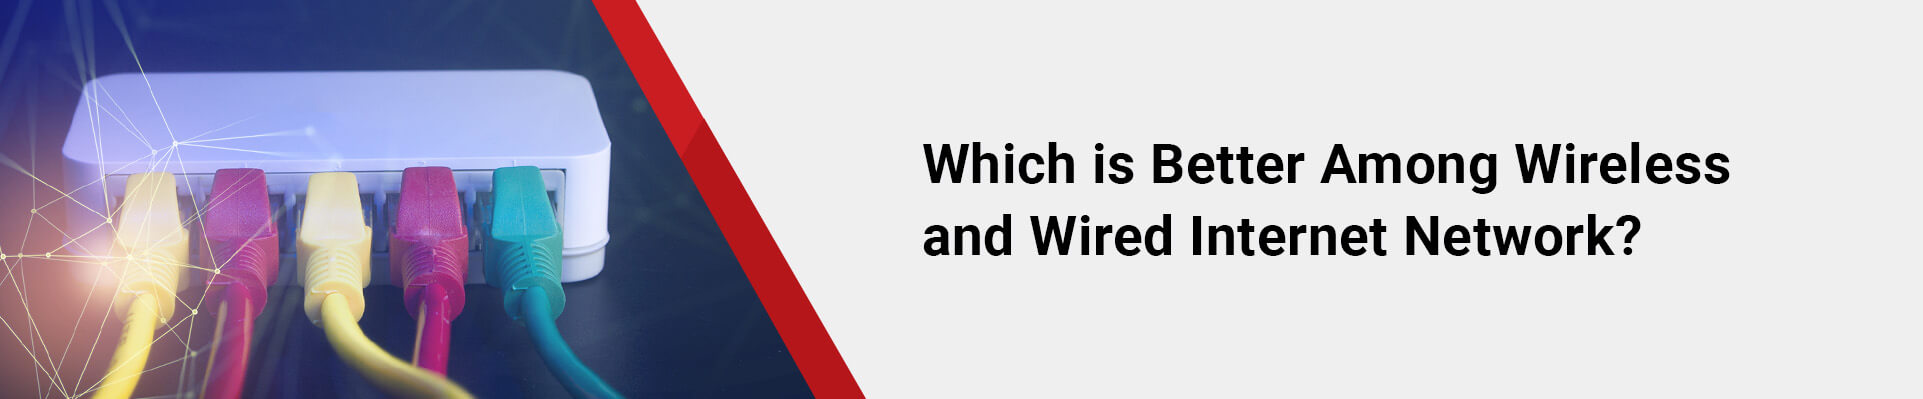 Which is Better Among Wireless and Wired Internet Network?